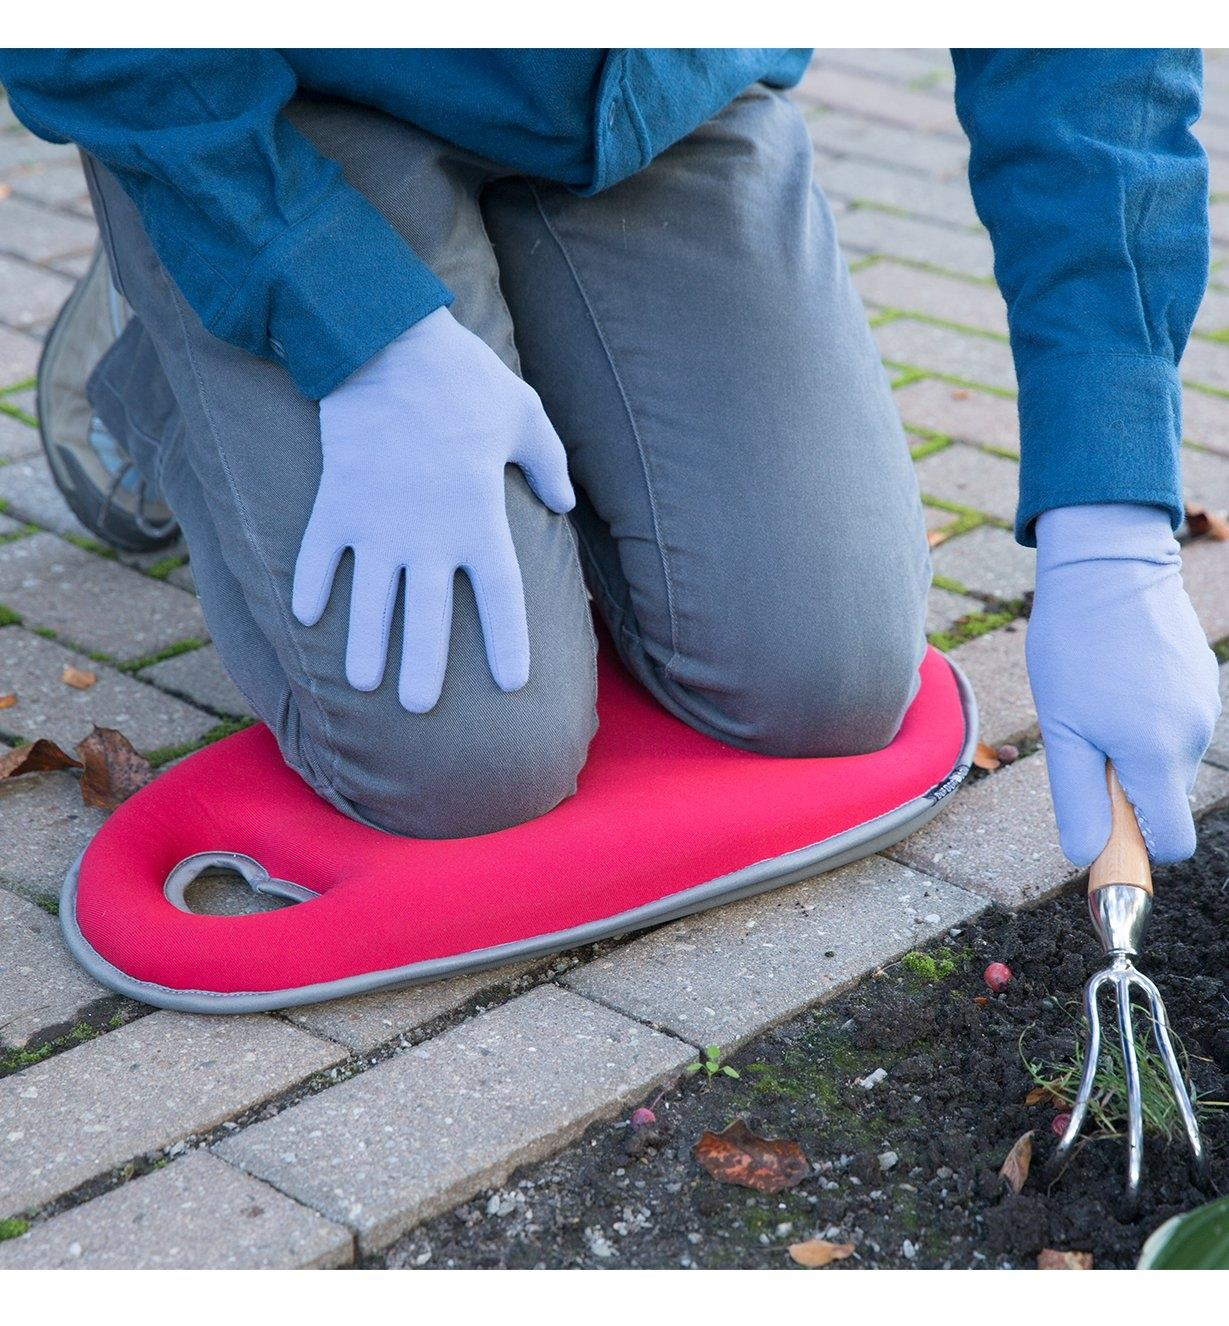 A person kneels on a Red Kneeling Pad while gardening